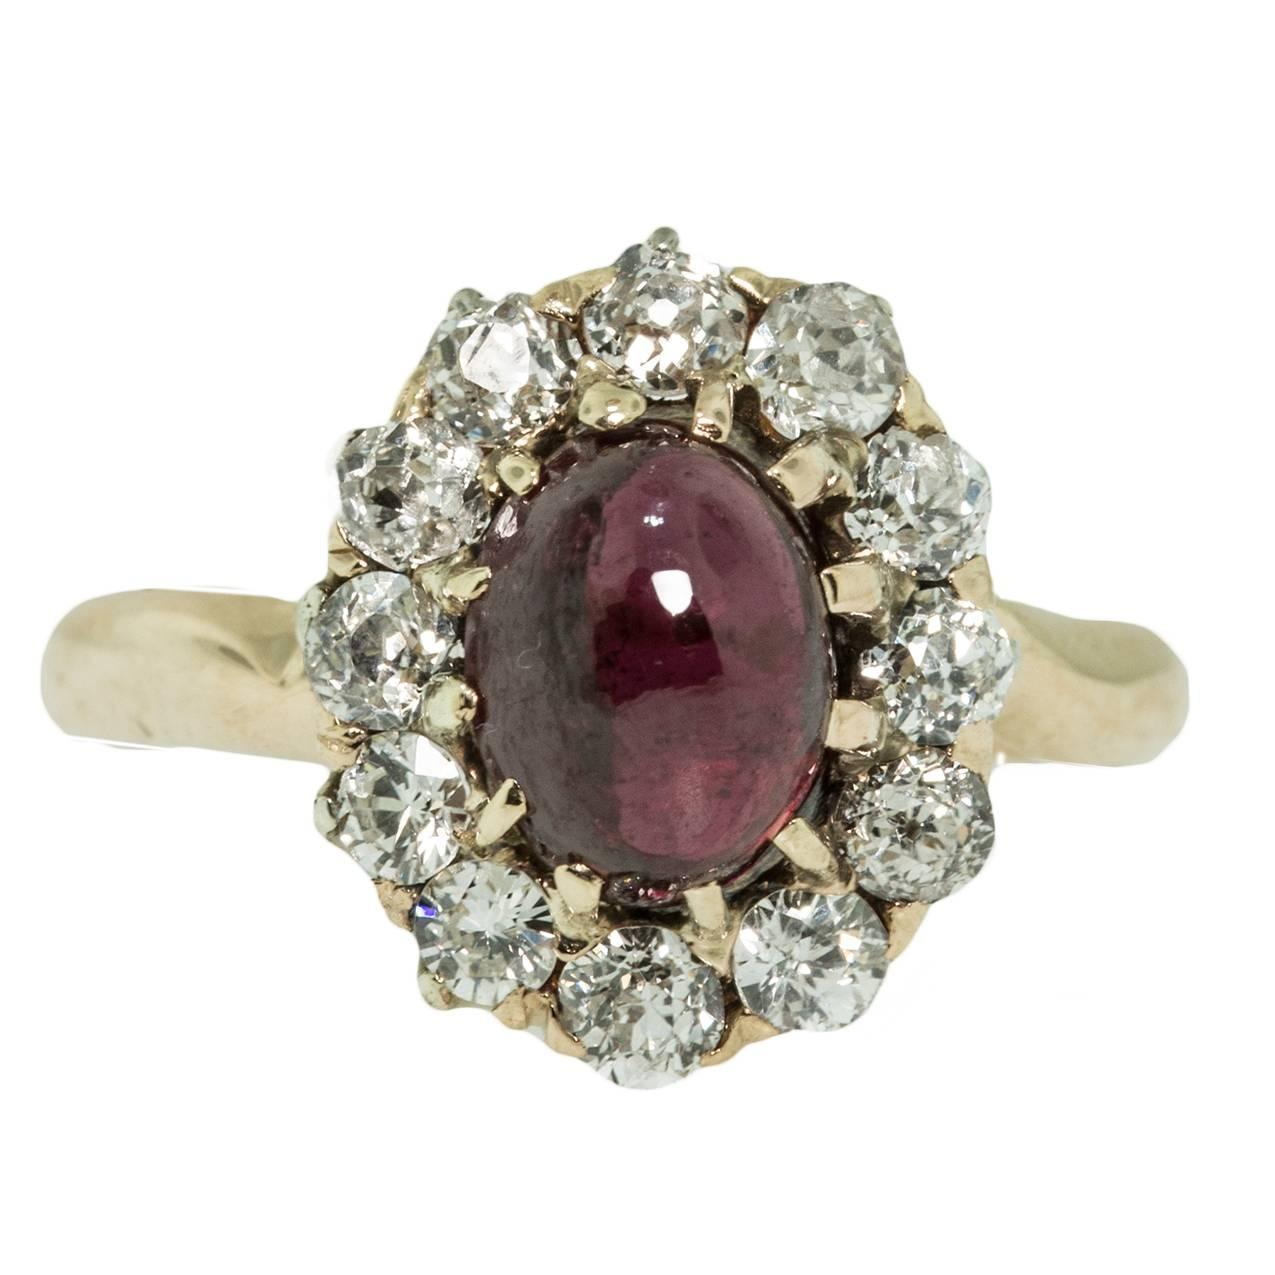 Antique Garnet Diamond Gold Ring For Sale at 1stdibs